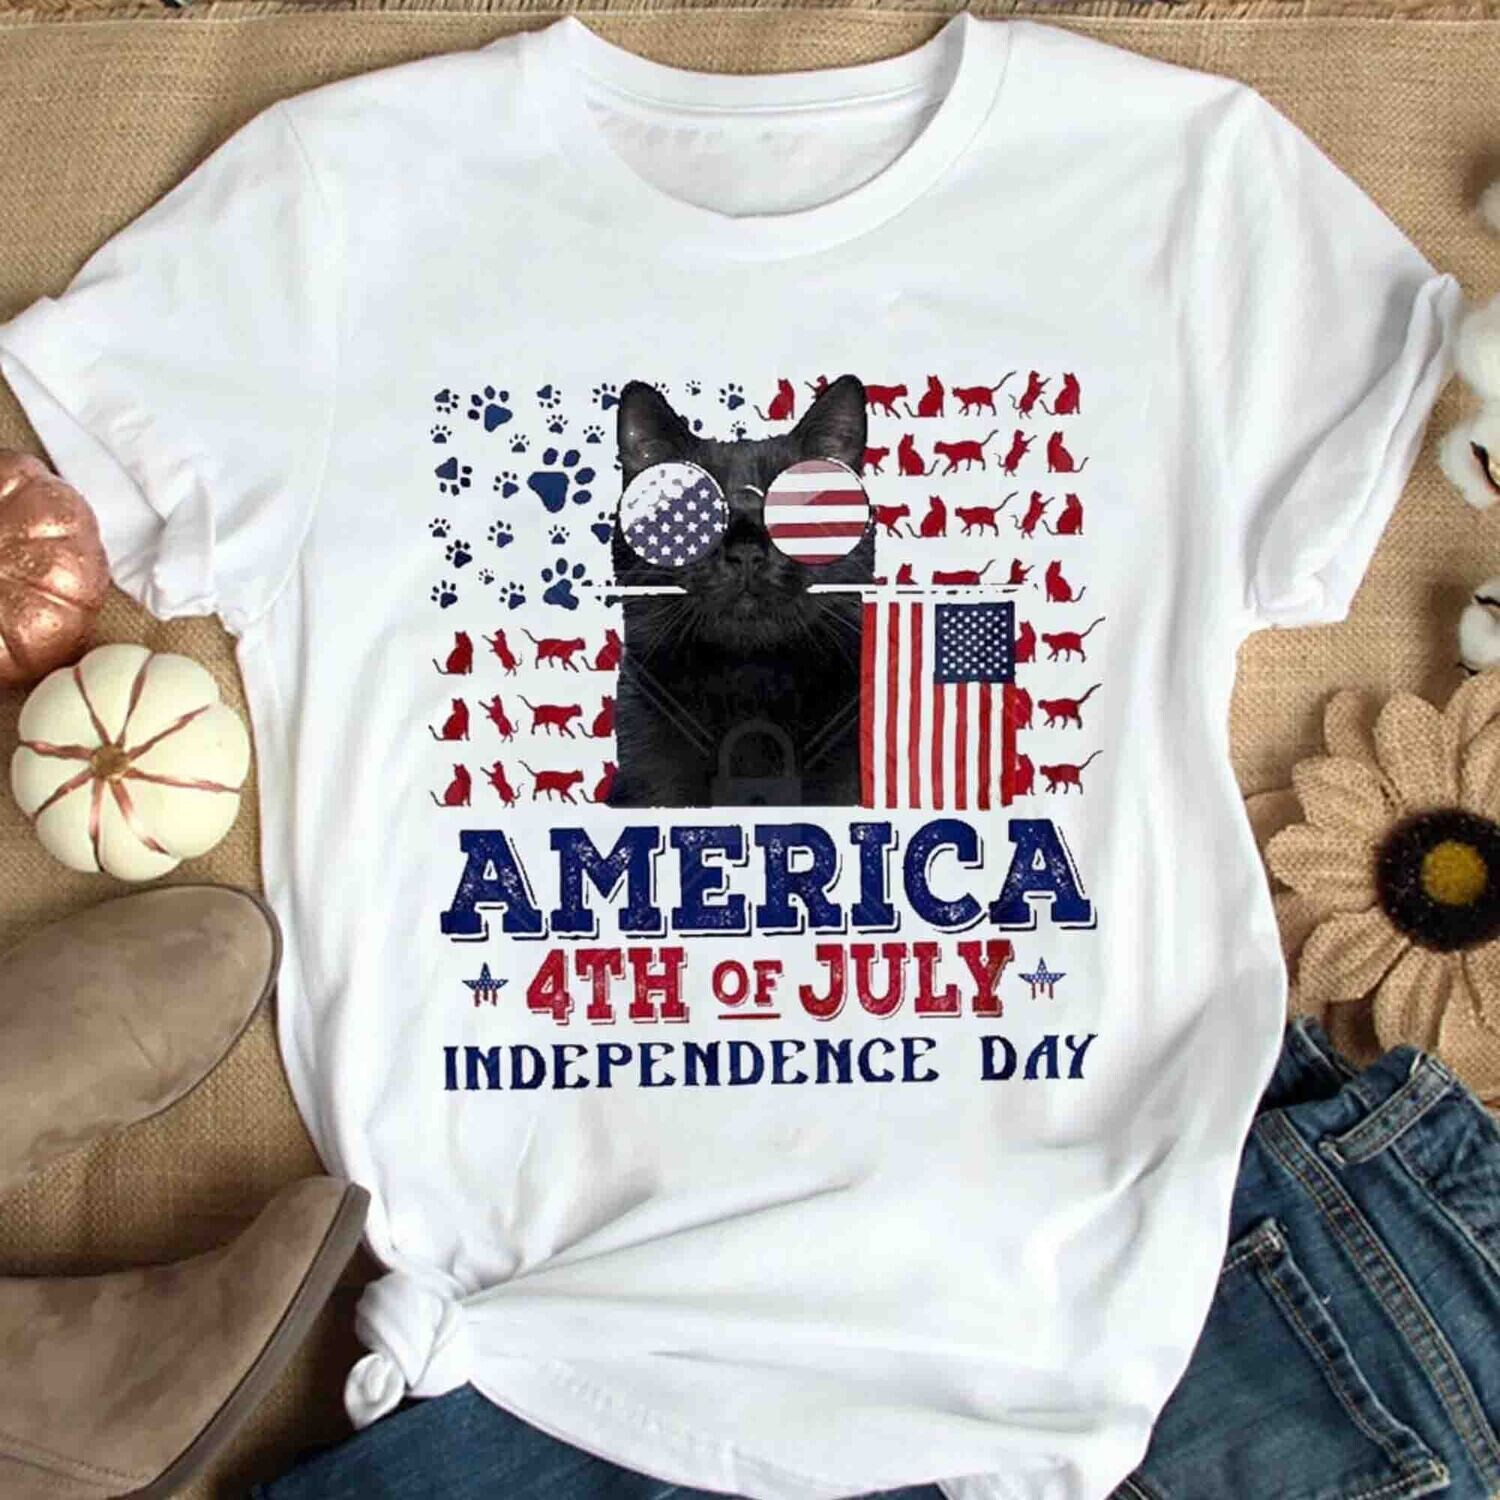 Cat America the 4th of July shirt Independence Day Gift Trending Unisex Hoodies Sweatshirt Tank Top V neck T Shirt